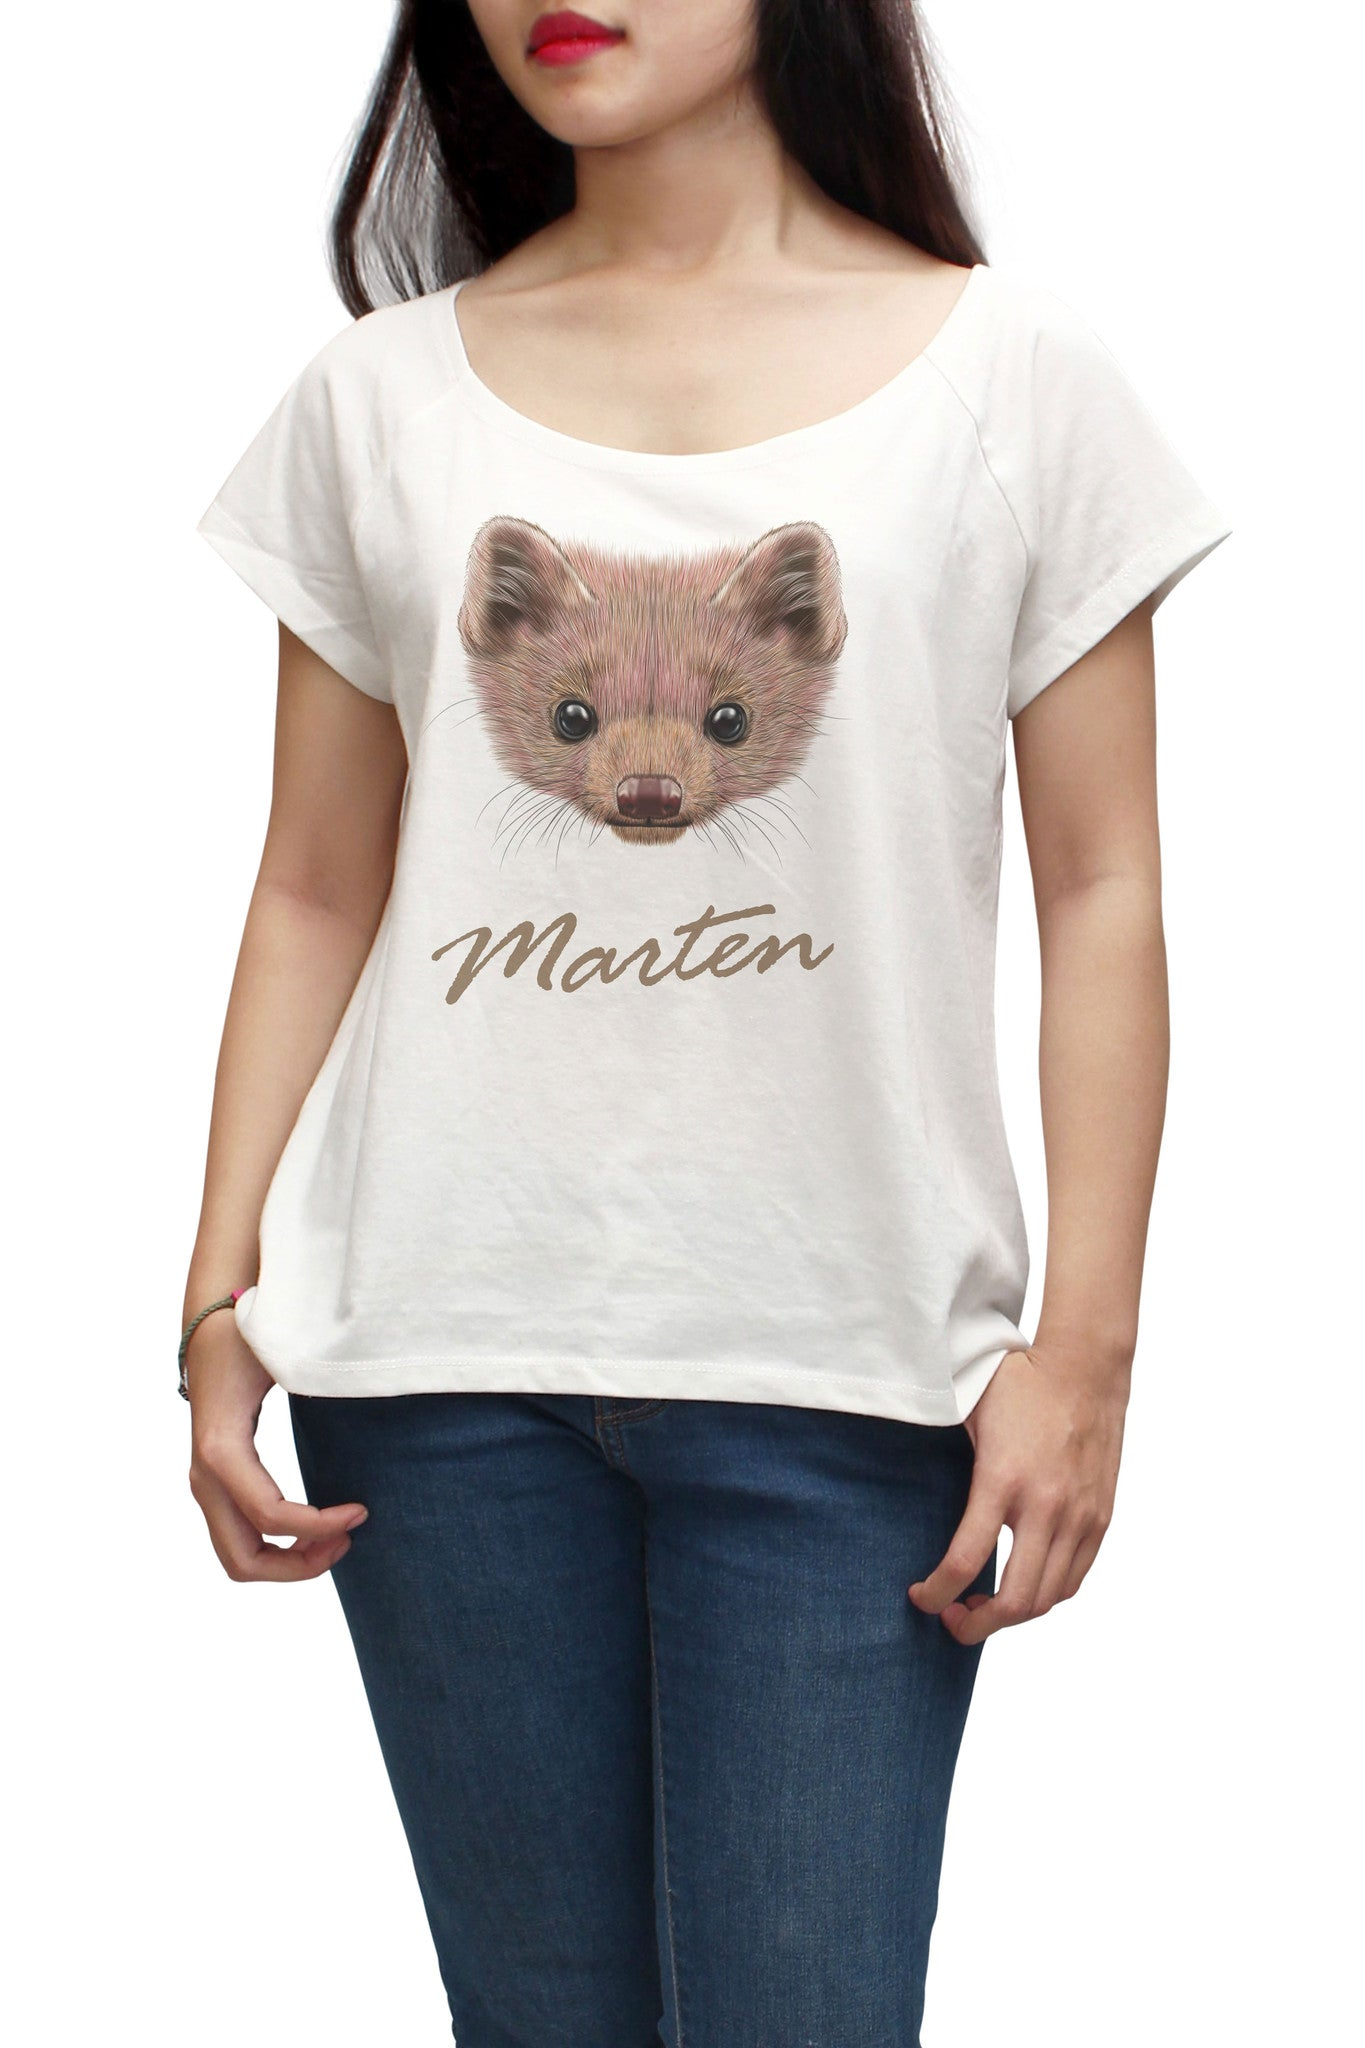 Women Portrait of Marten Printed Short Sleeves T-shirt WTS_01